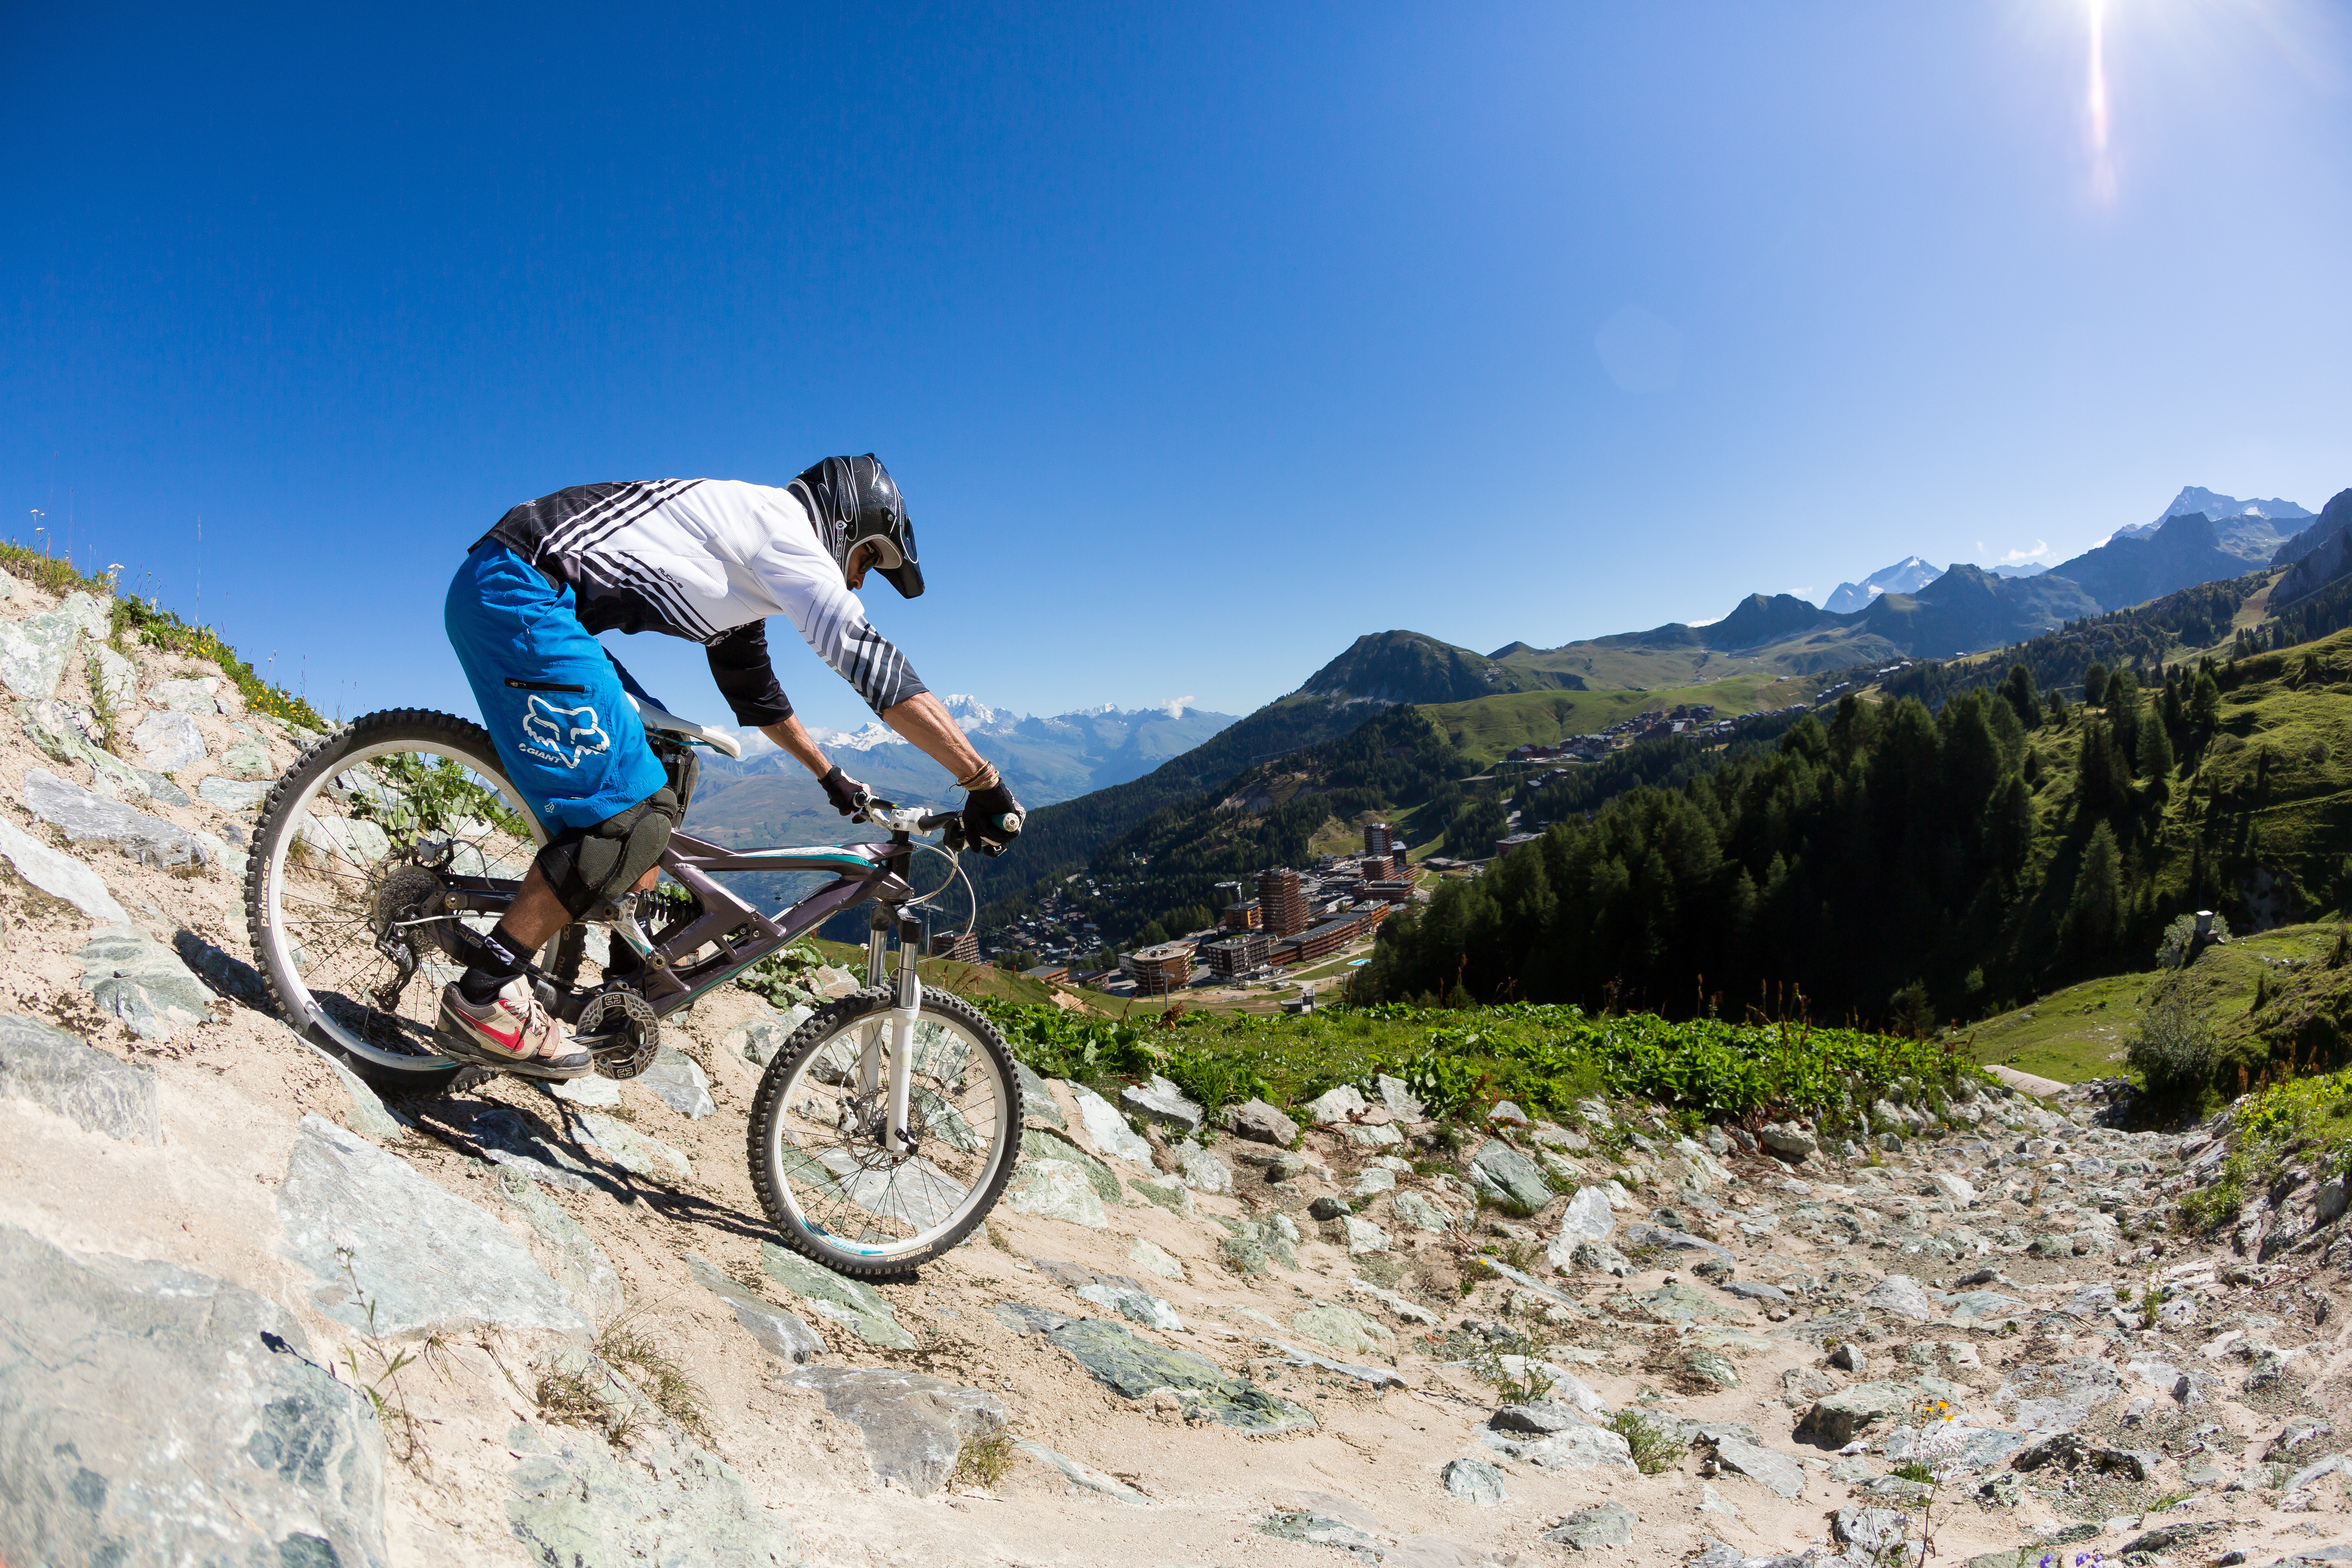 Descent in VTT. Bike Park Colorado. Hurlte down the mountain thanks to the Bike Park of la Plagne.